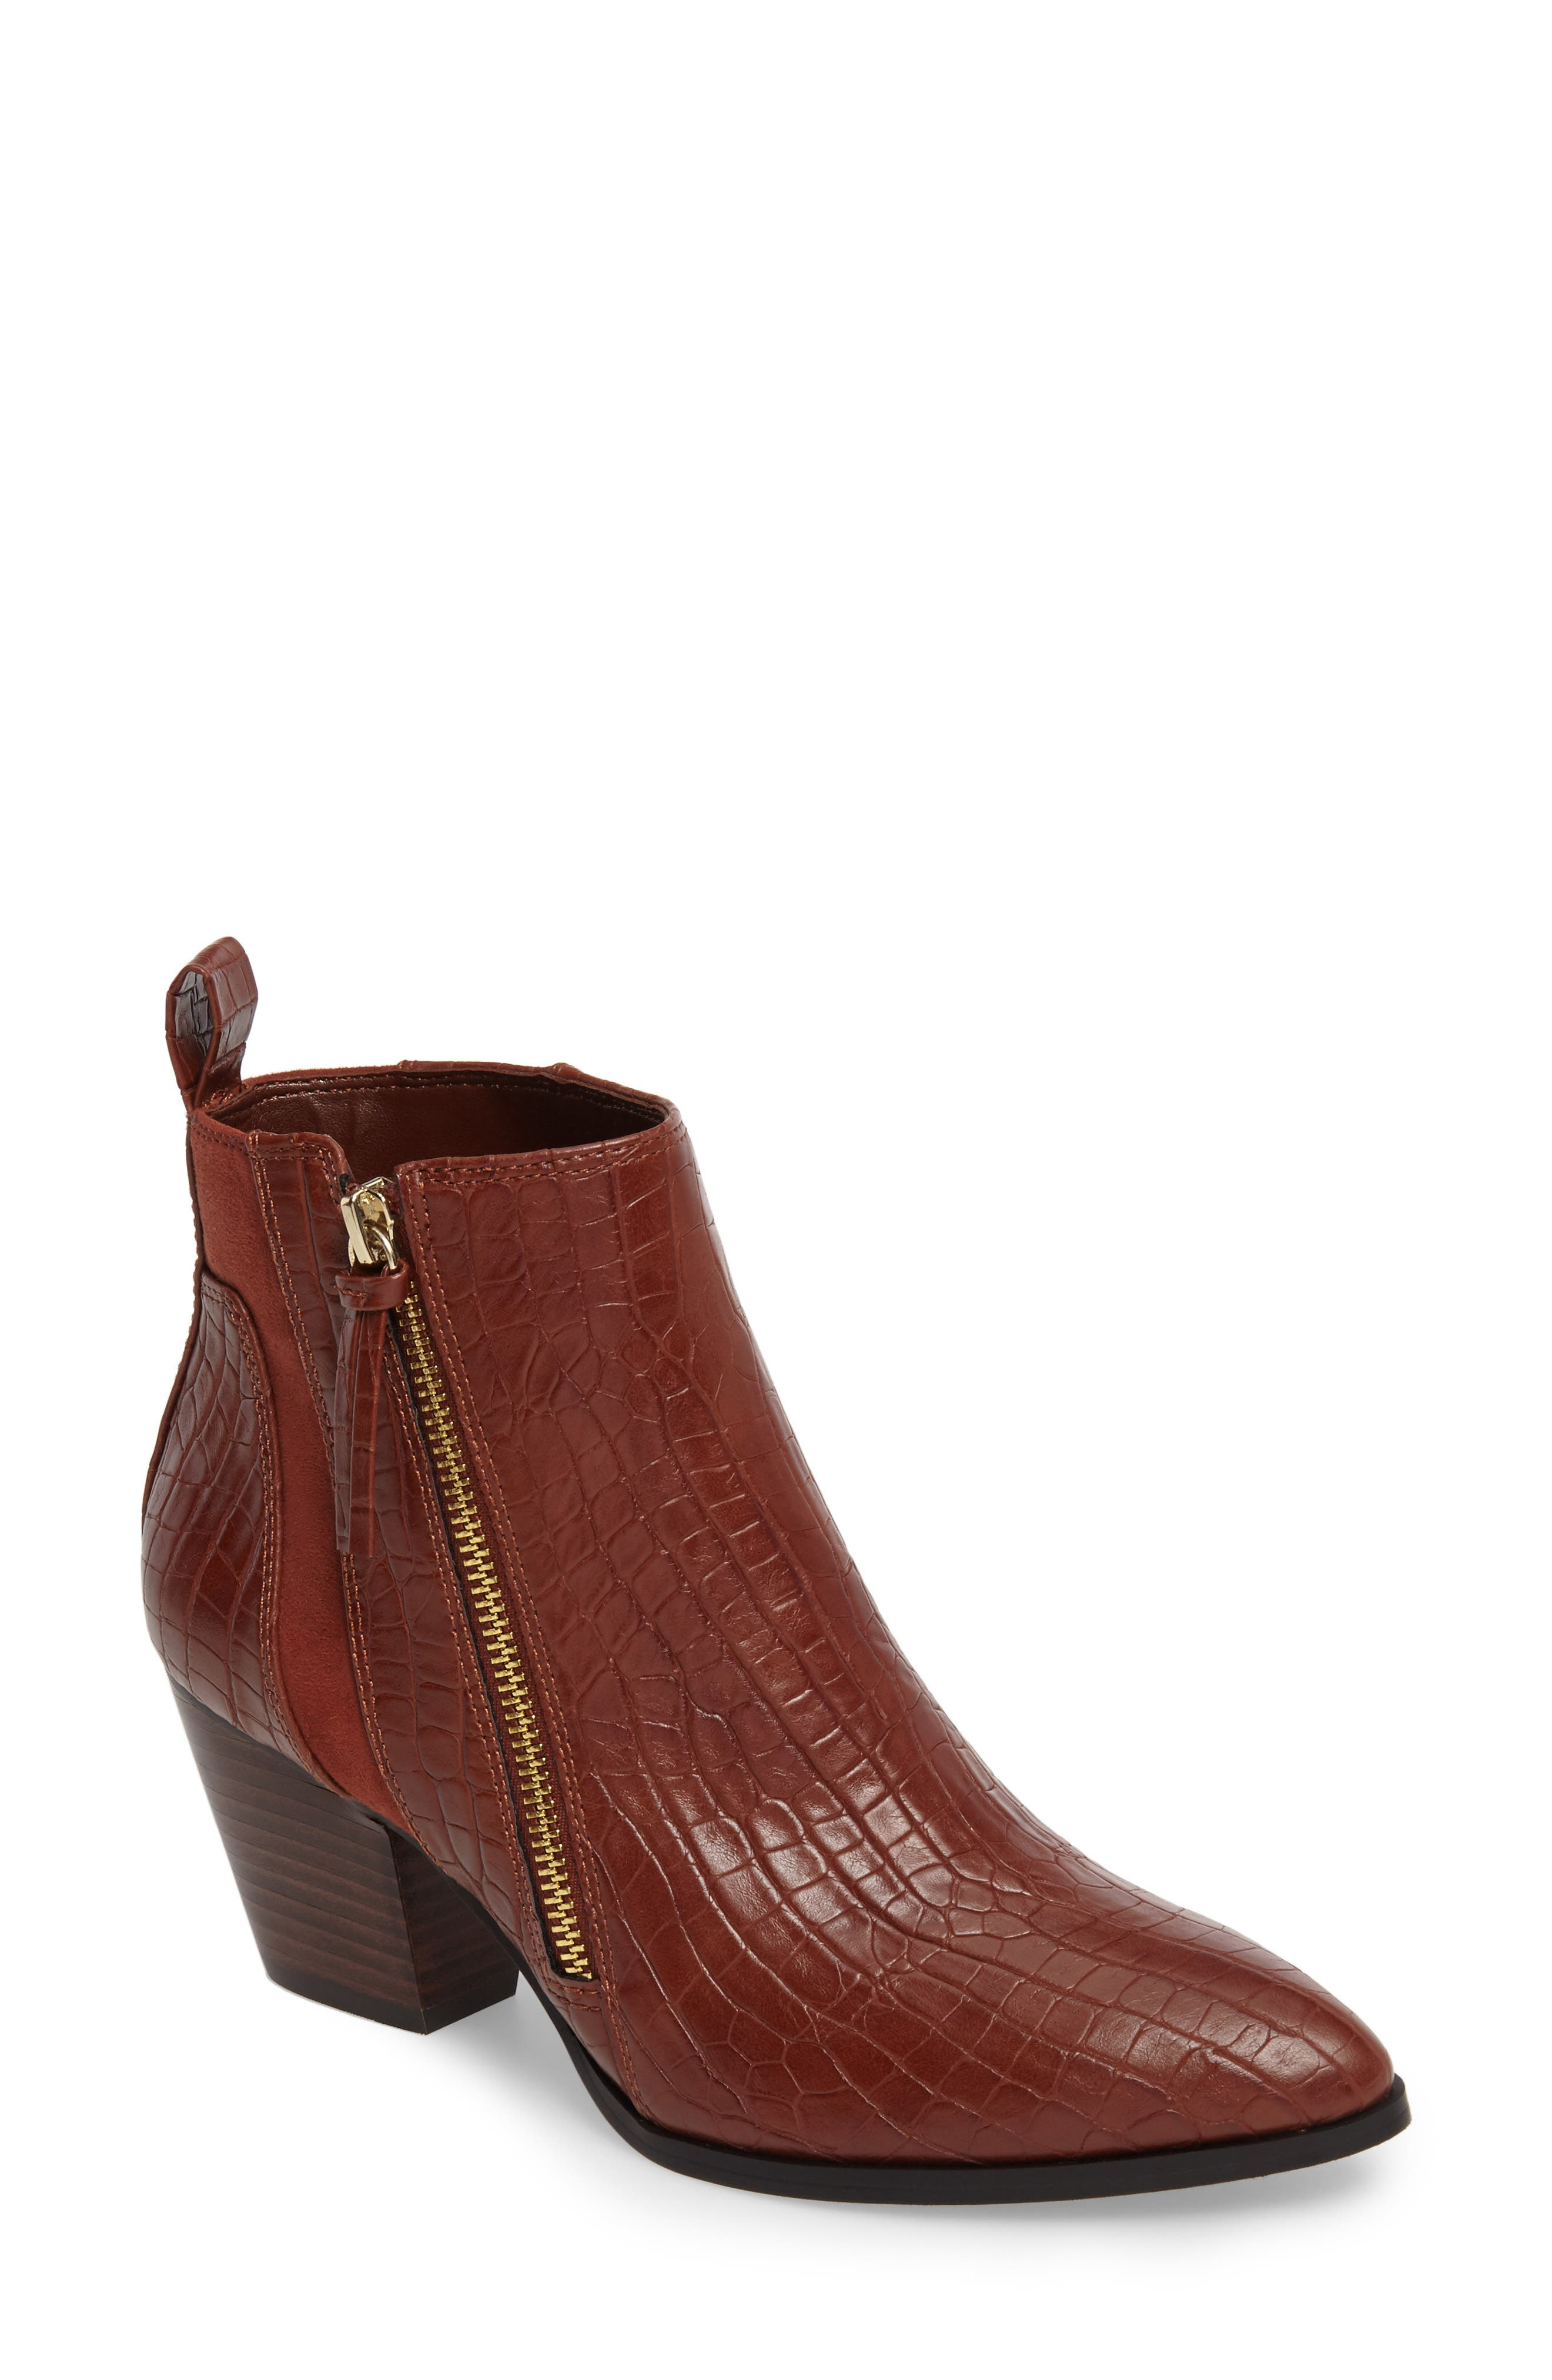 Everst II Pointy Toe Bootie,                         Main,                         color, Tan Suede